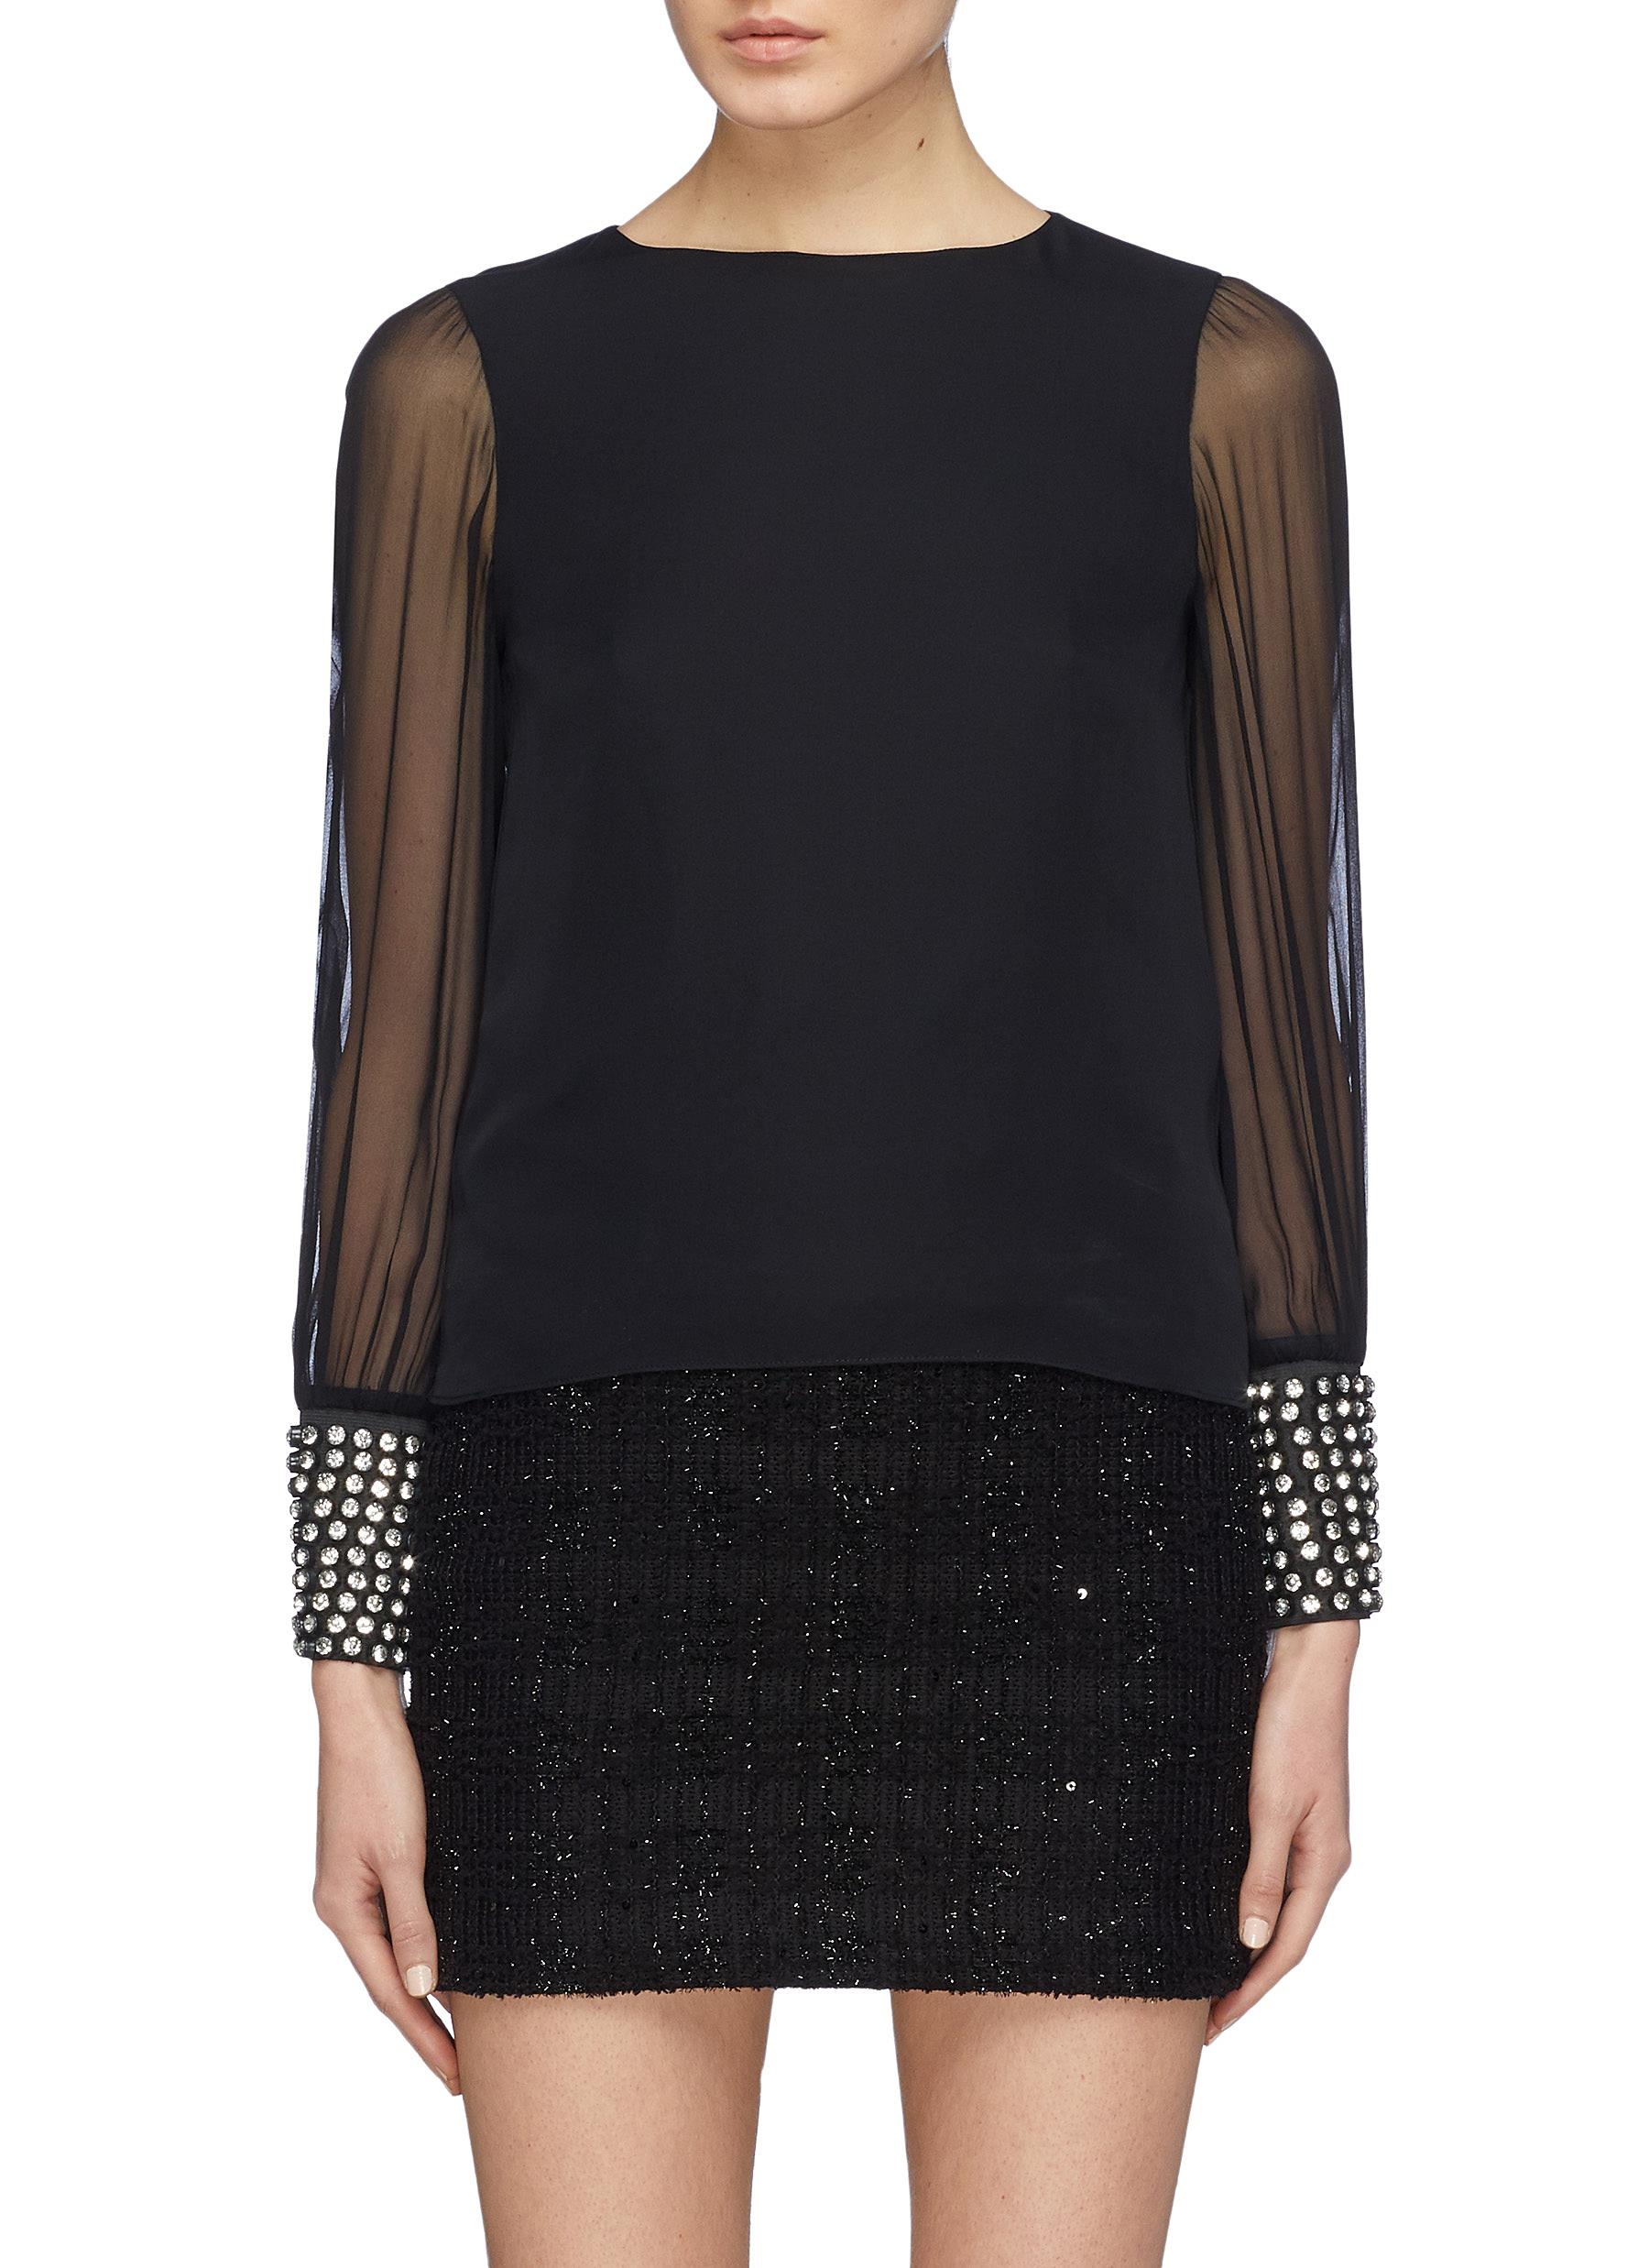 Vix glass crystal cuff silk blouse by Alice + Olivia